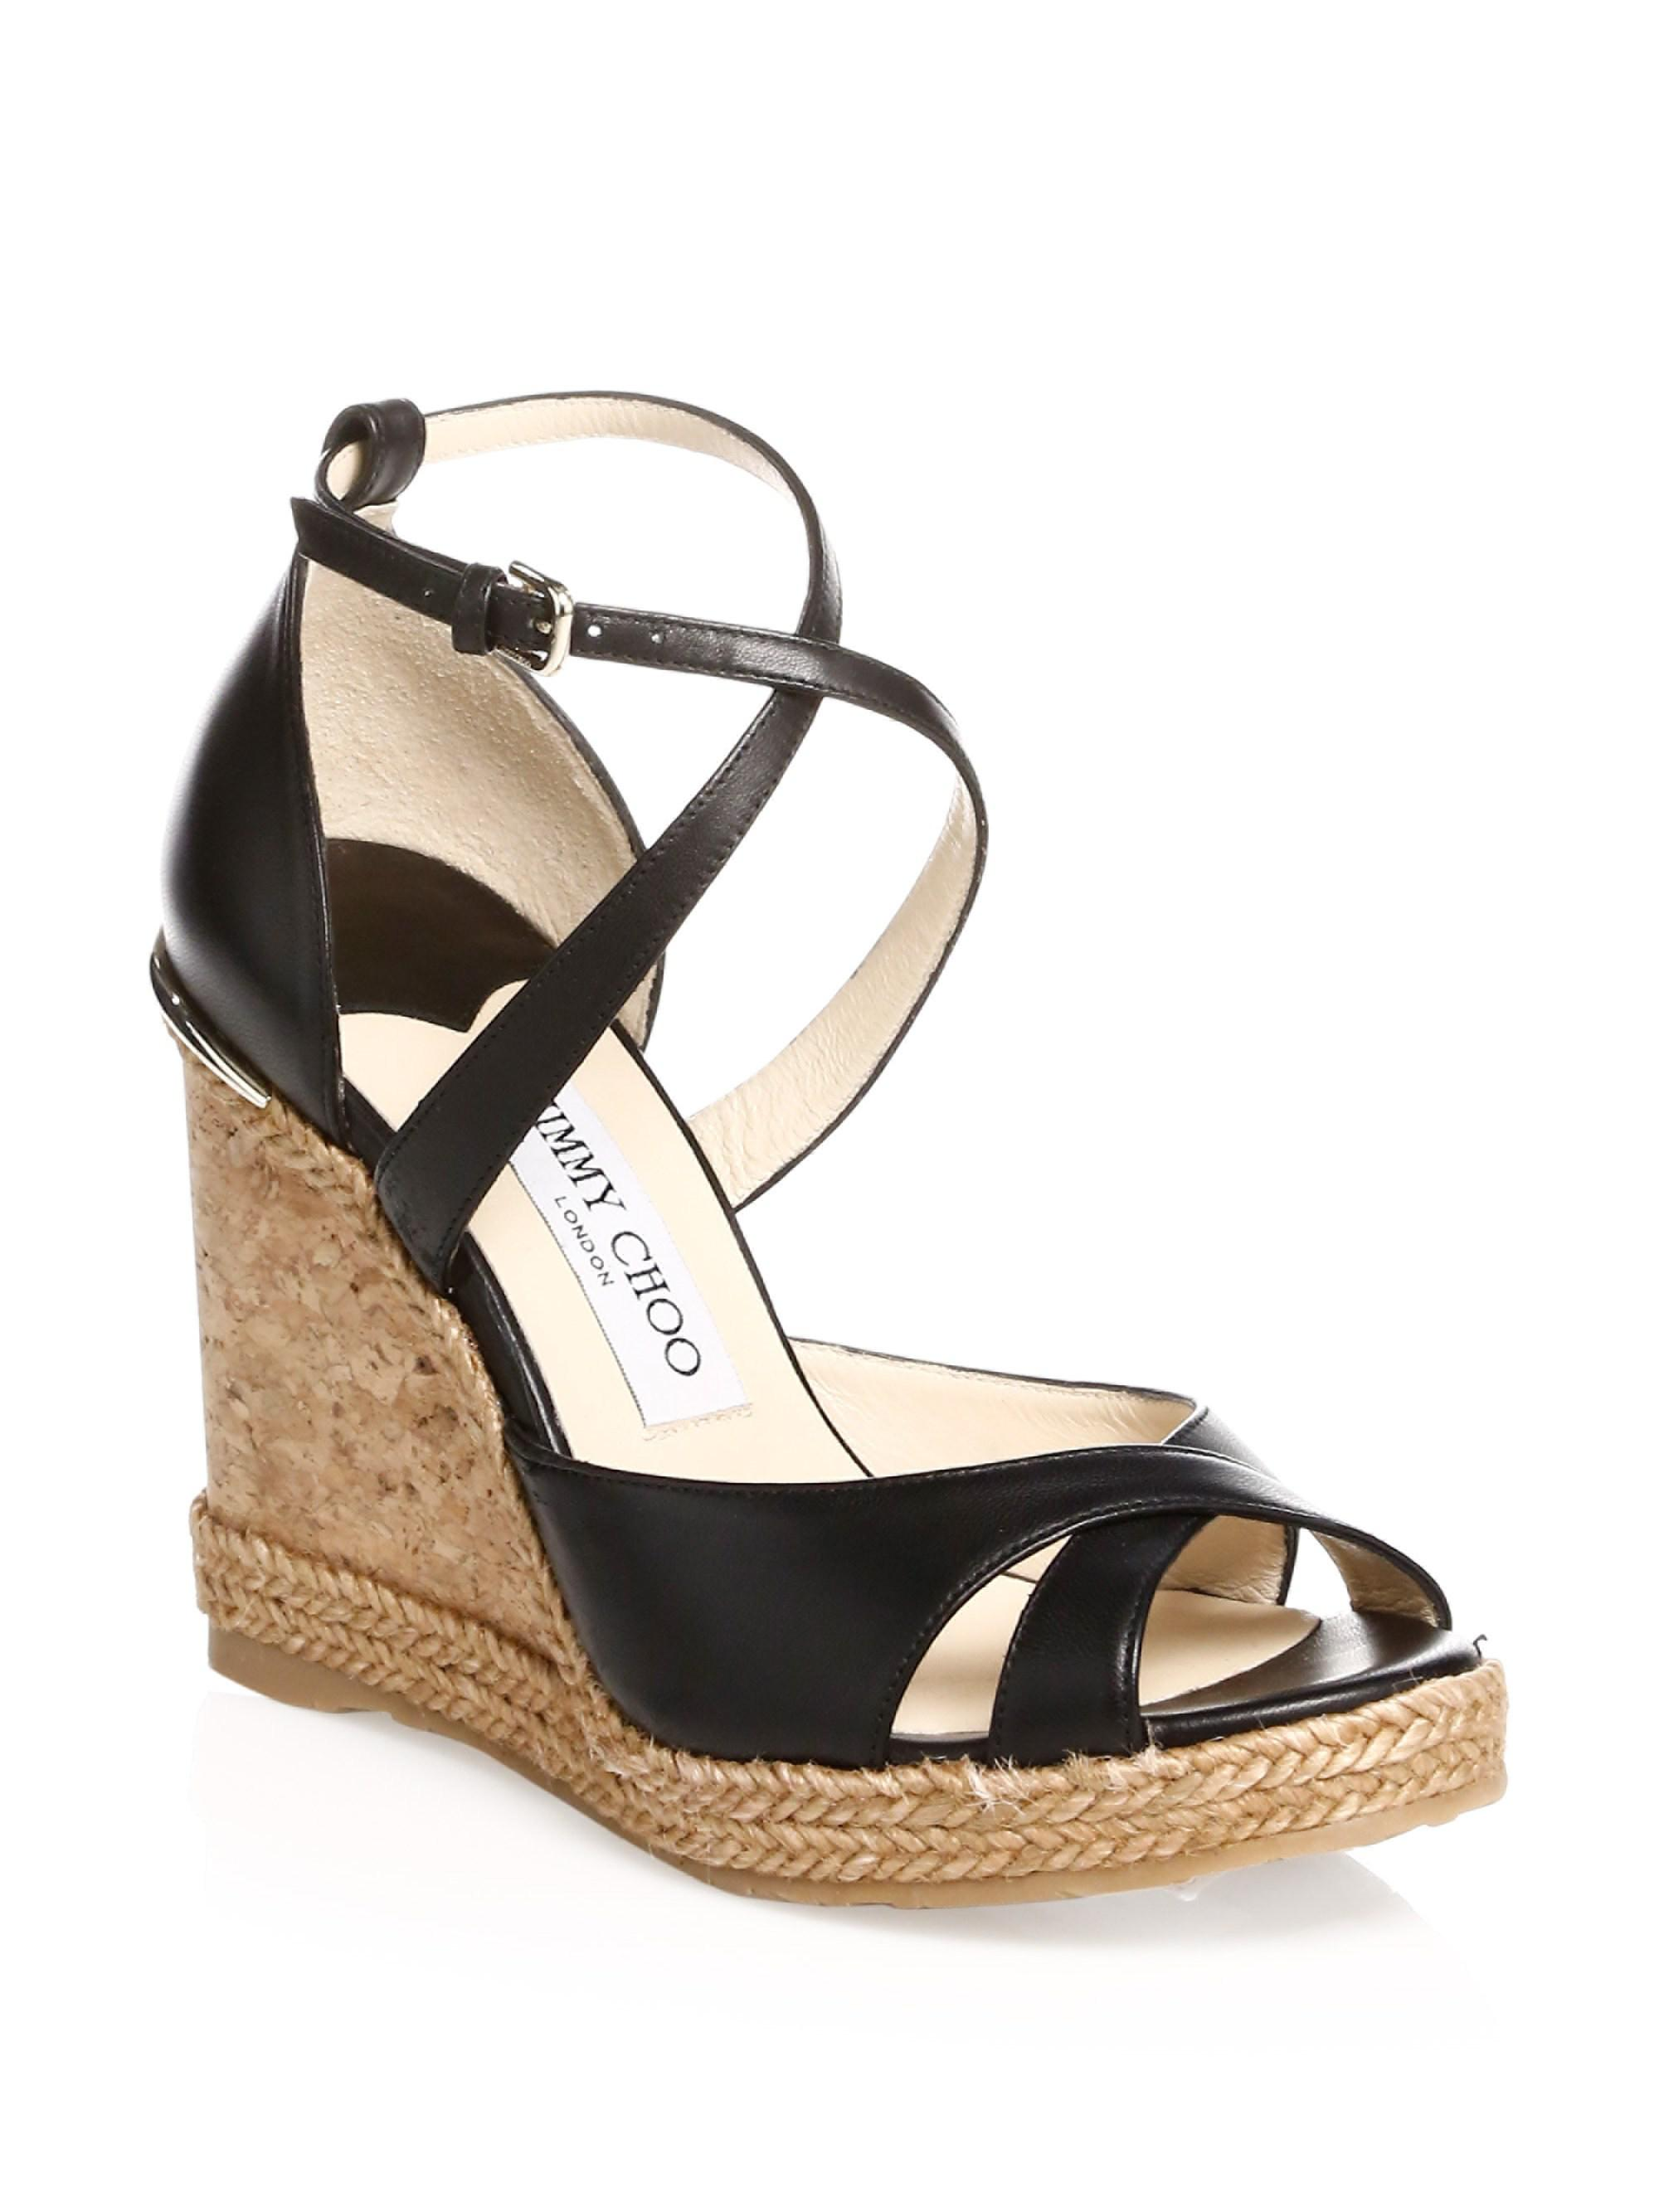 6aa8044c056 Jimmy Choo Women's Alanah Leather Wedge Sandals - Black in Black ...